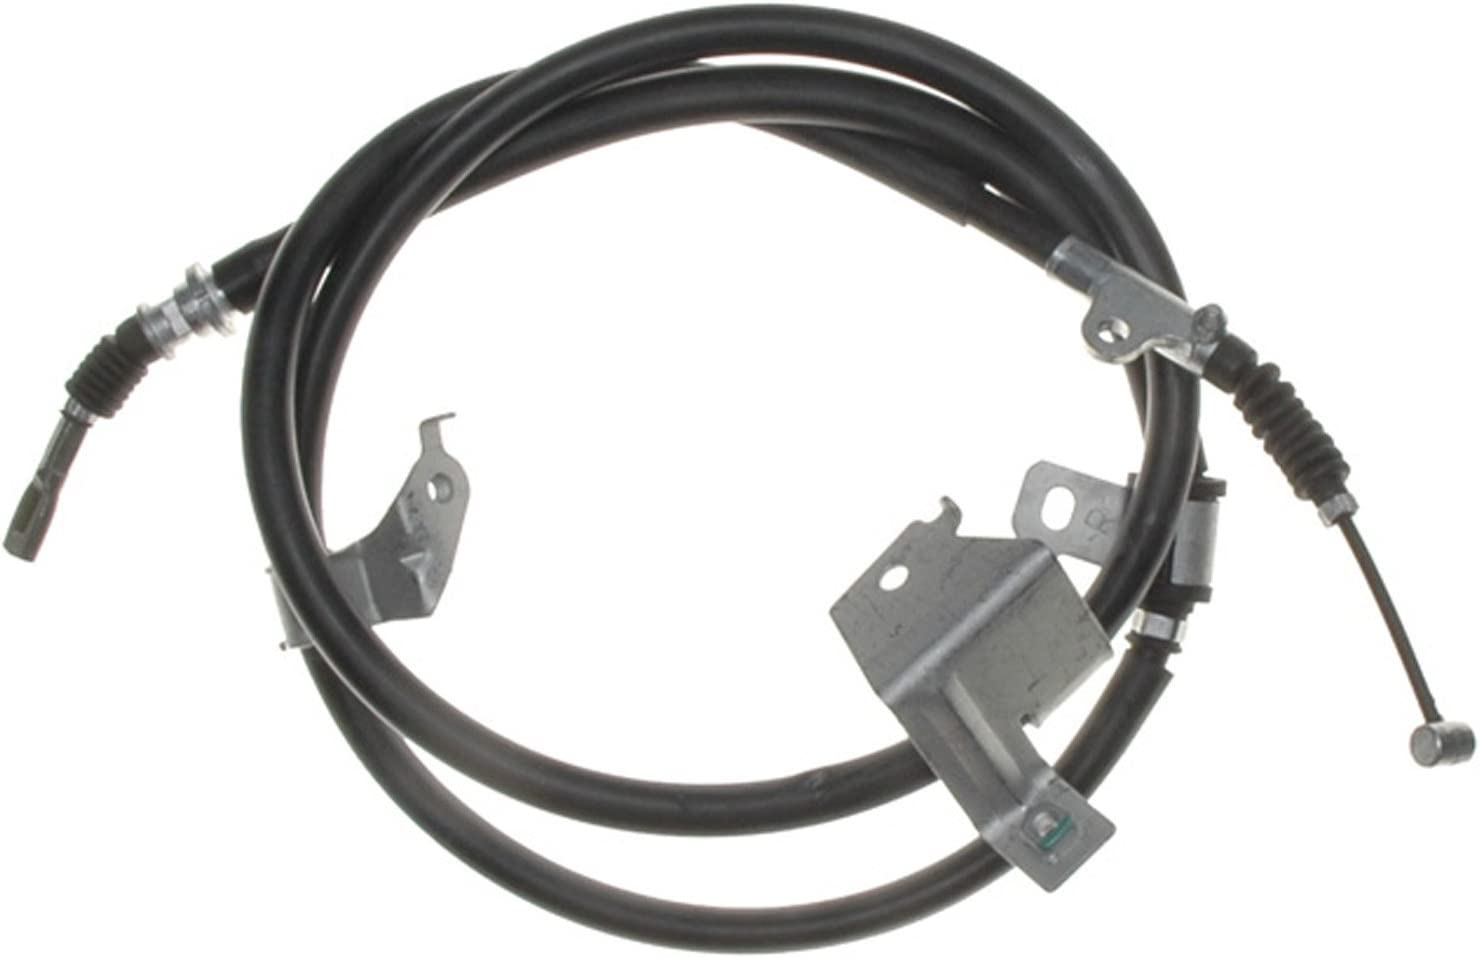 ACDelco 18P2462 Professional Rear Passenger Side Parking Brake Cable Assembly